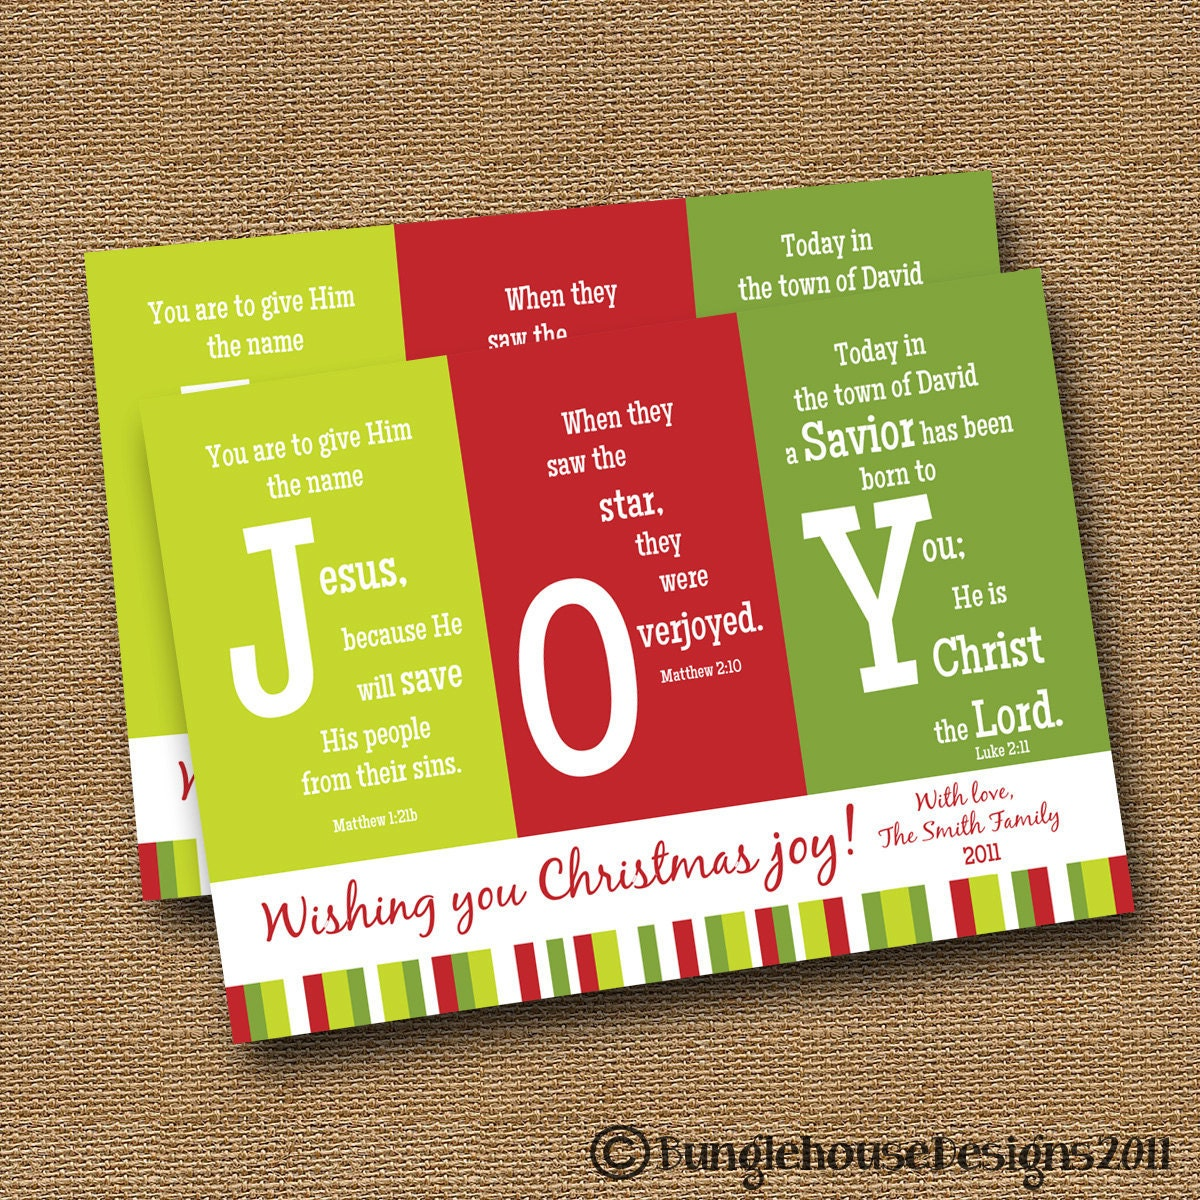 Christmas Tree In The Bible Scripture: Christmas Joy Quotes. QuotesGram